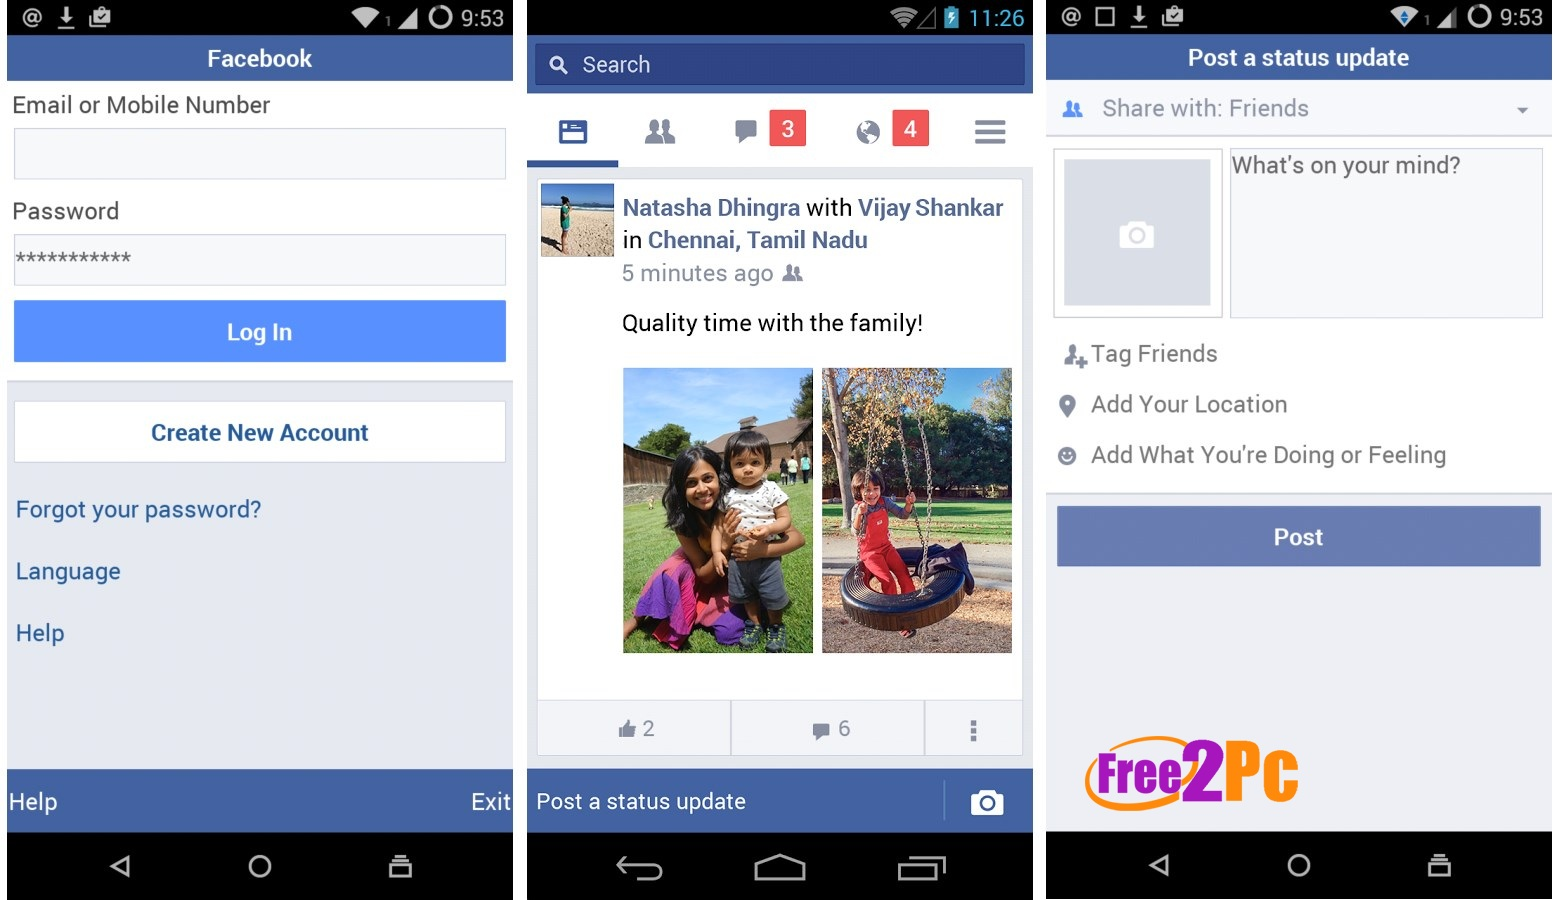 facebook latest version apk free download